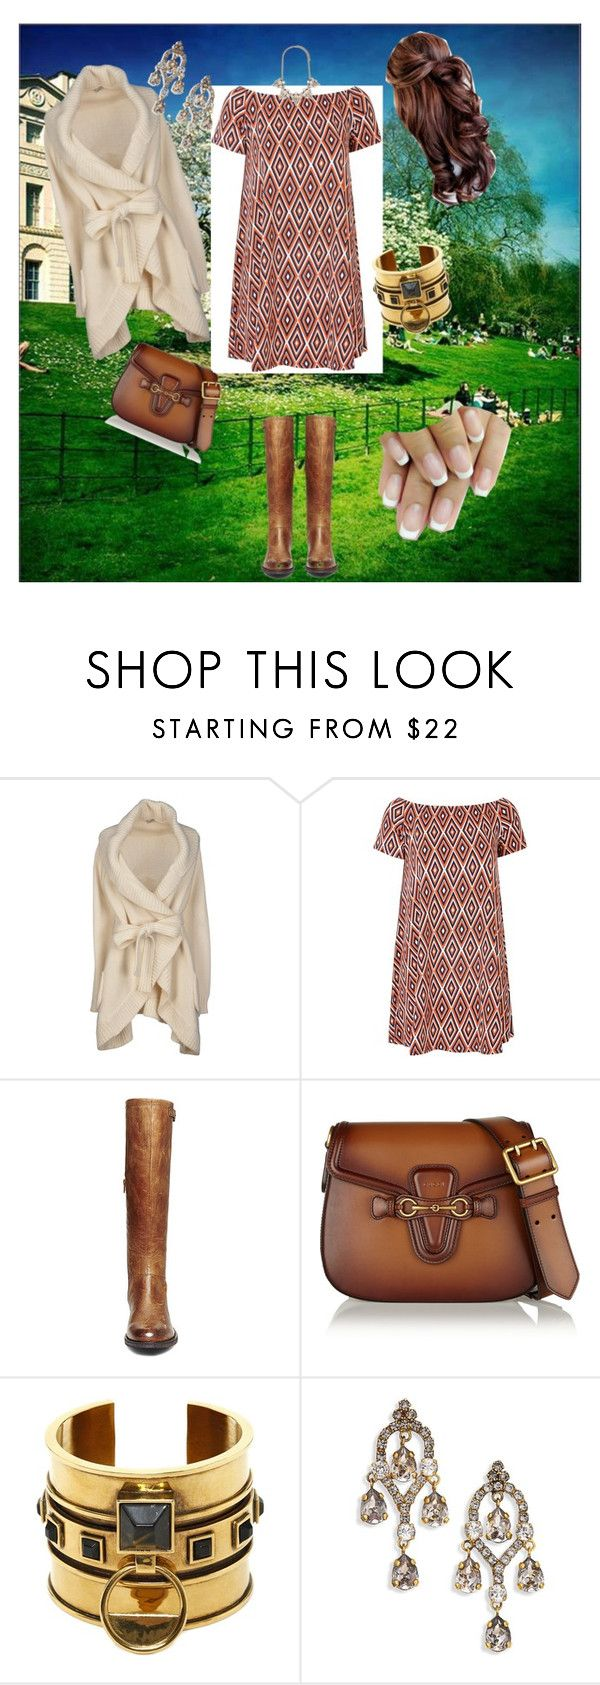 """""""Early spring"""" by boopreski ❤ liked on Polyvore featuring Le Ragazze Di St. Barth, Glamorous, Steve Madden, Gucci, Alexander McQueen, Erickson Beamon and Forever 21"""